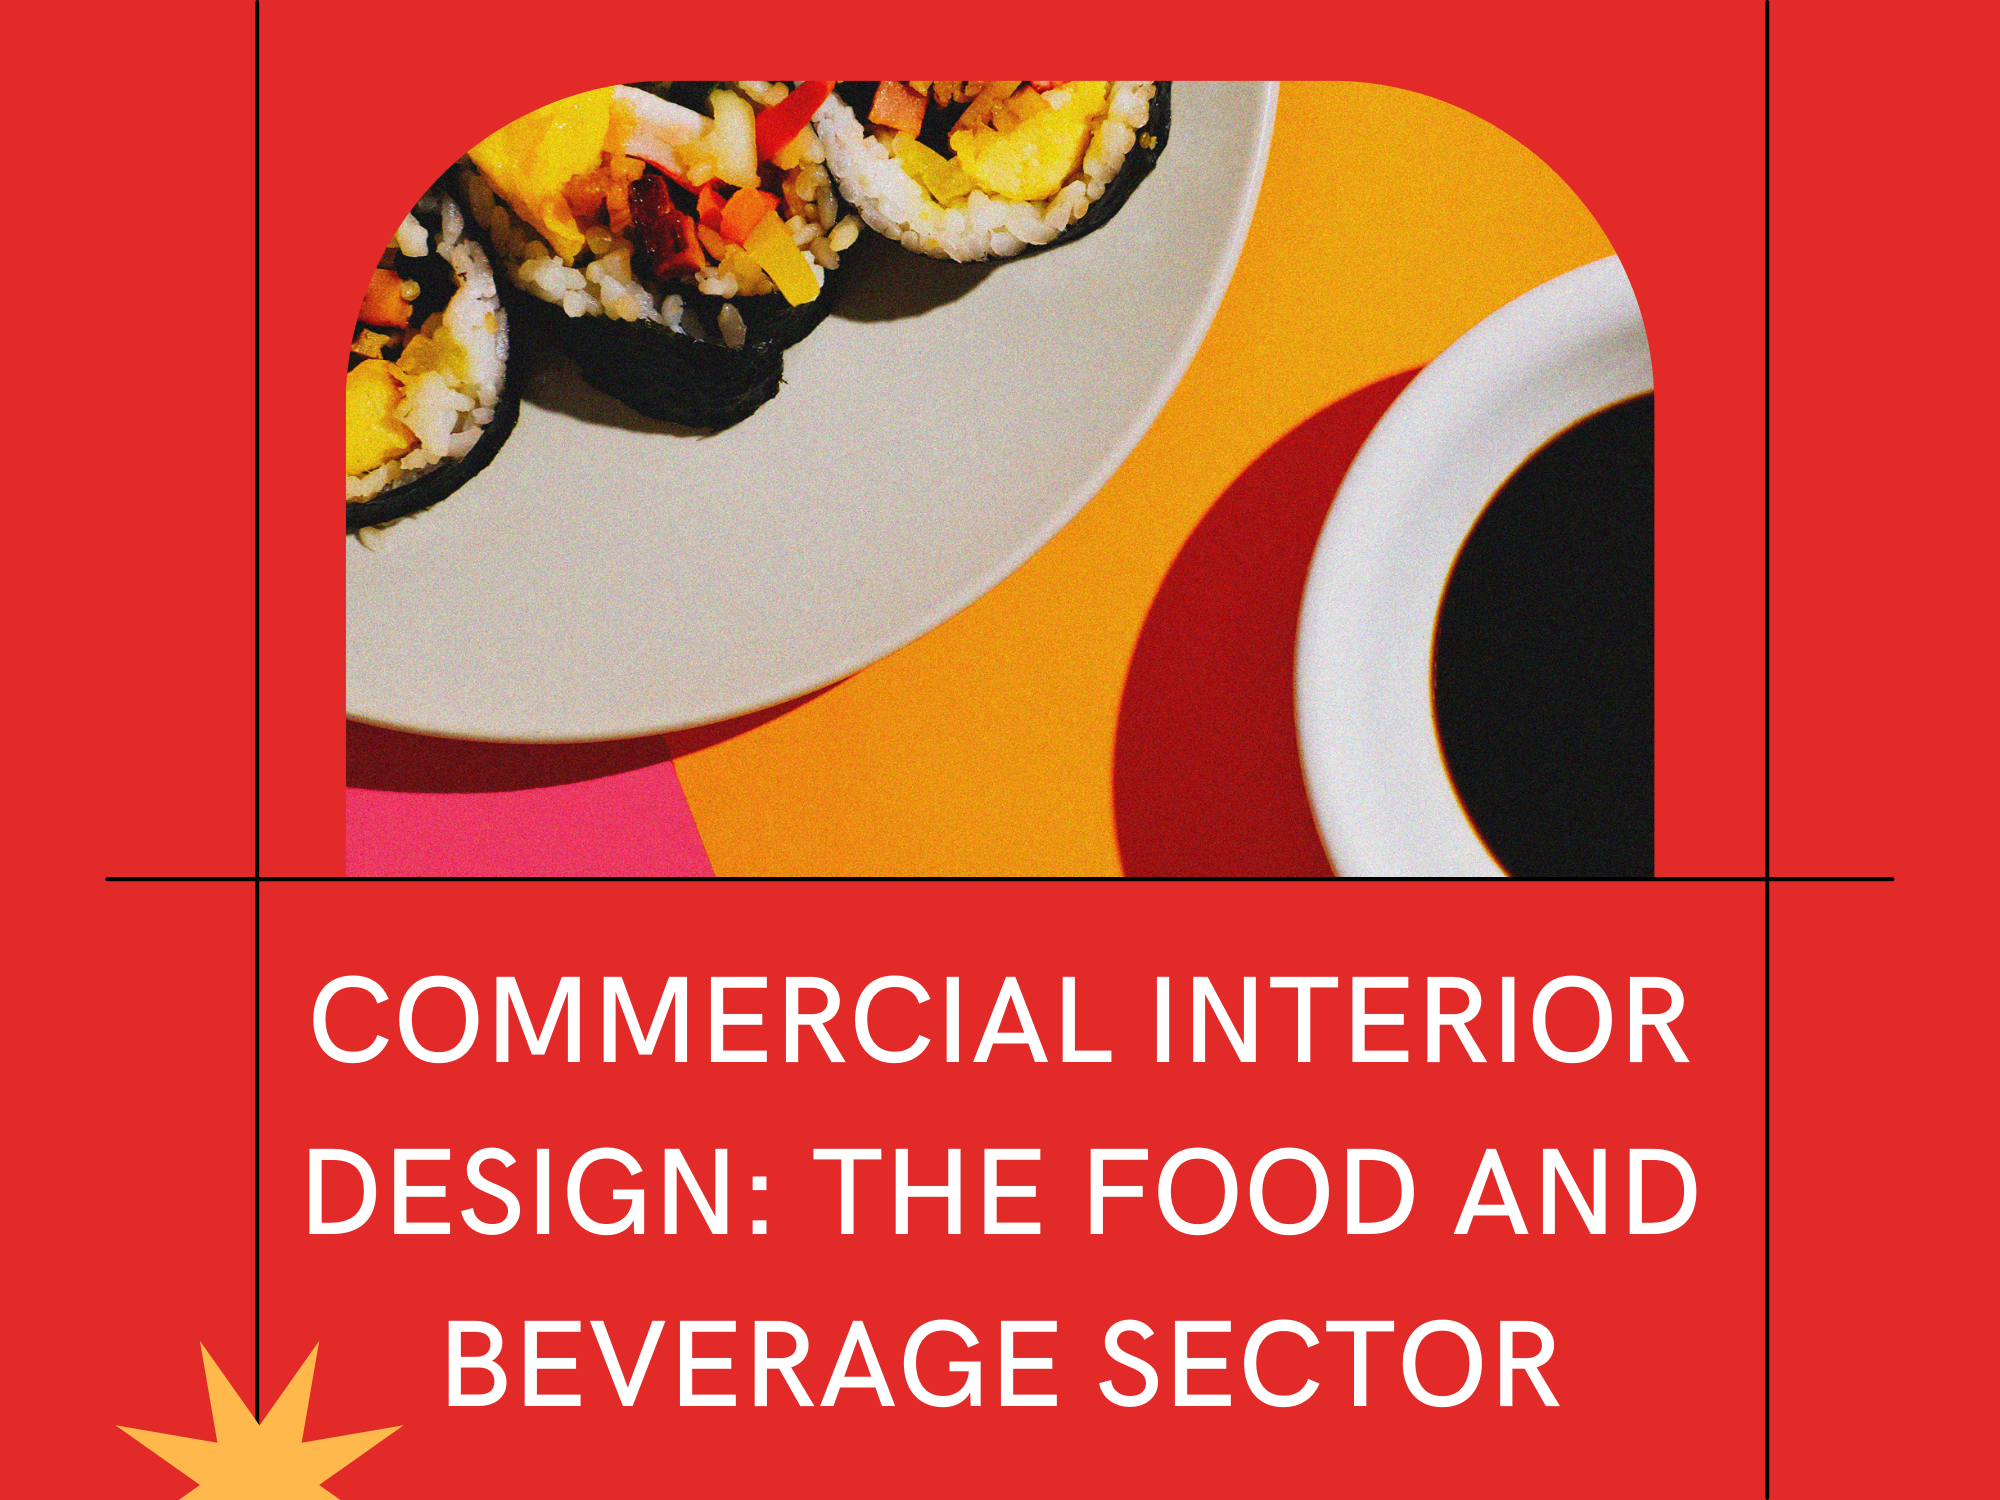 Commercial-interior-design-the-food-and-beverage-sector